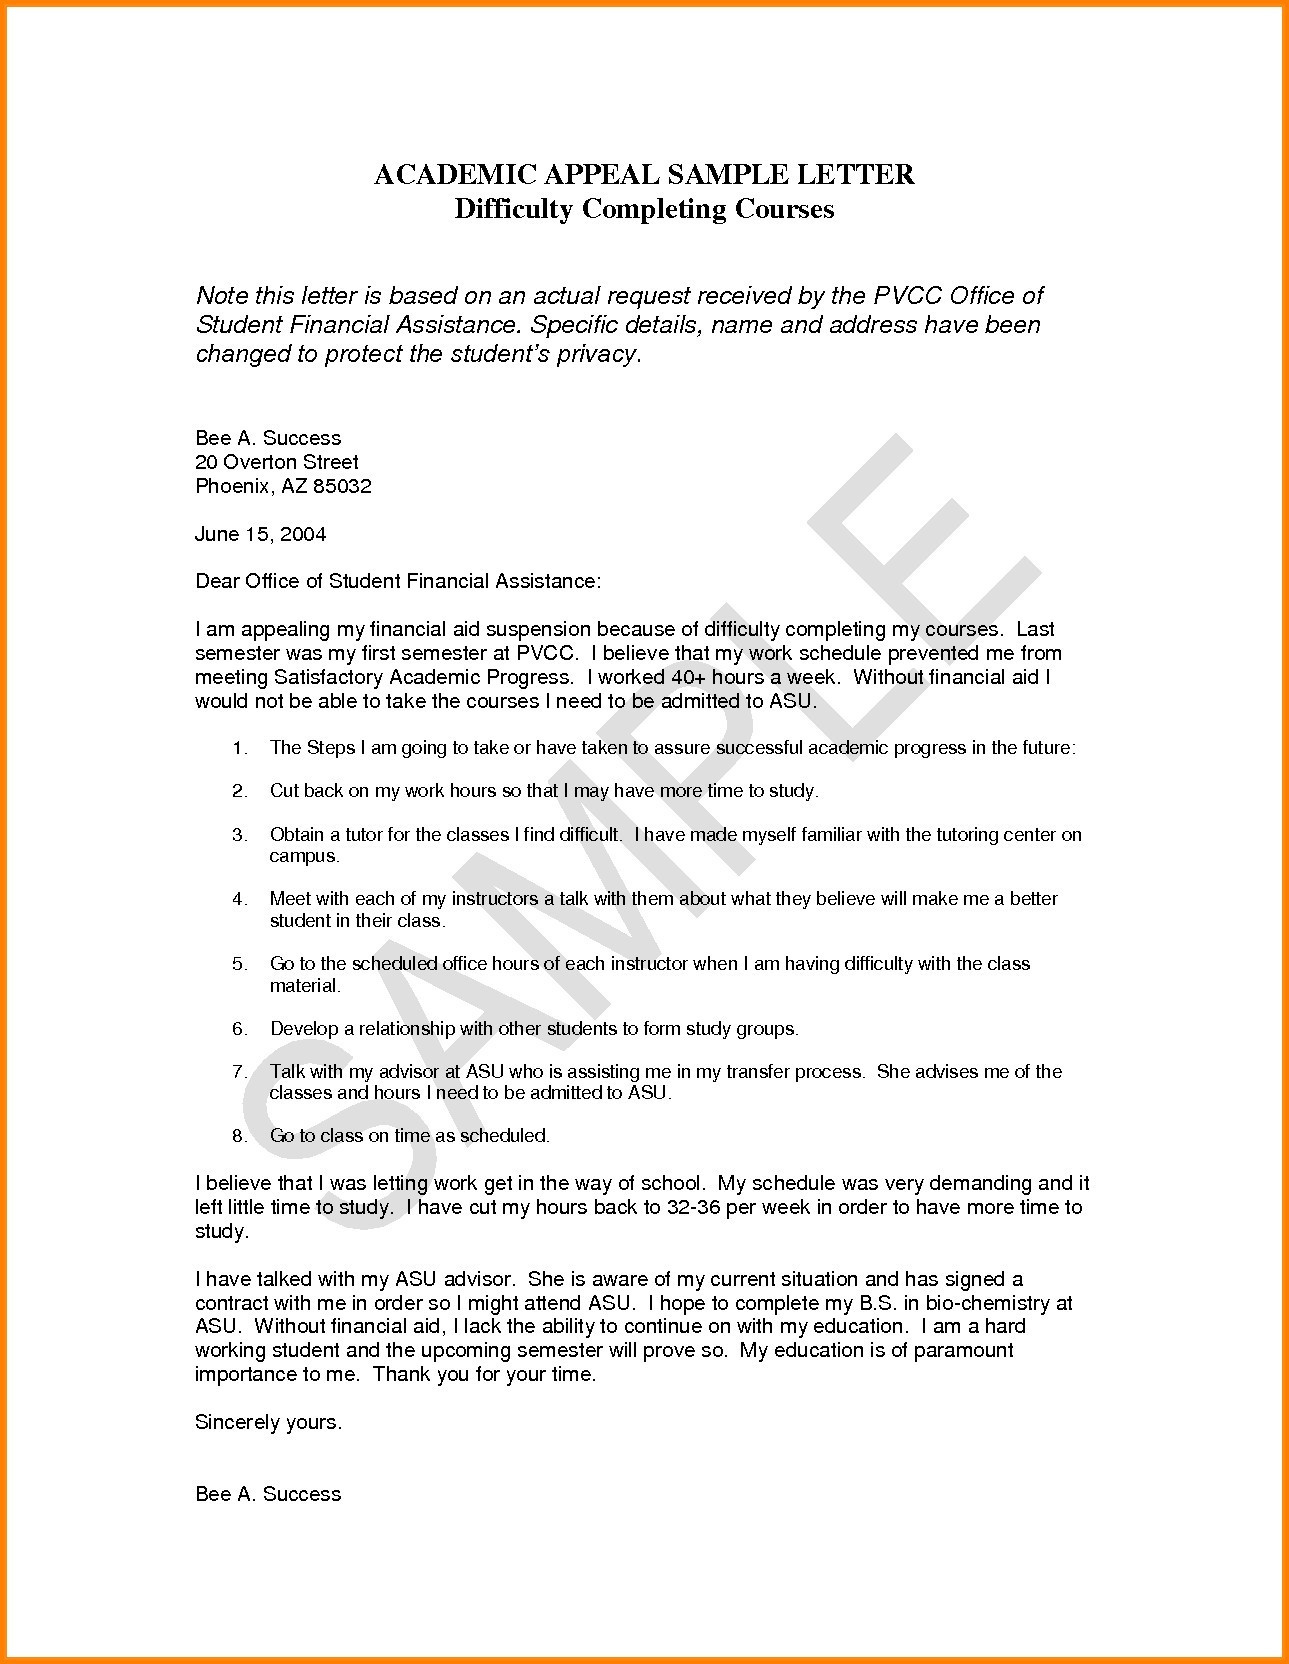 dismissal letter template example-Academic Probation Letter Template Fresh Dismissal Appeal Letter format Refrence Academic Appeal Letter 11-a